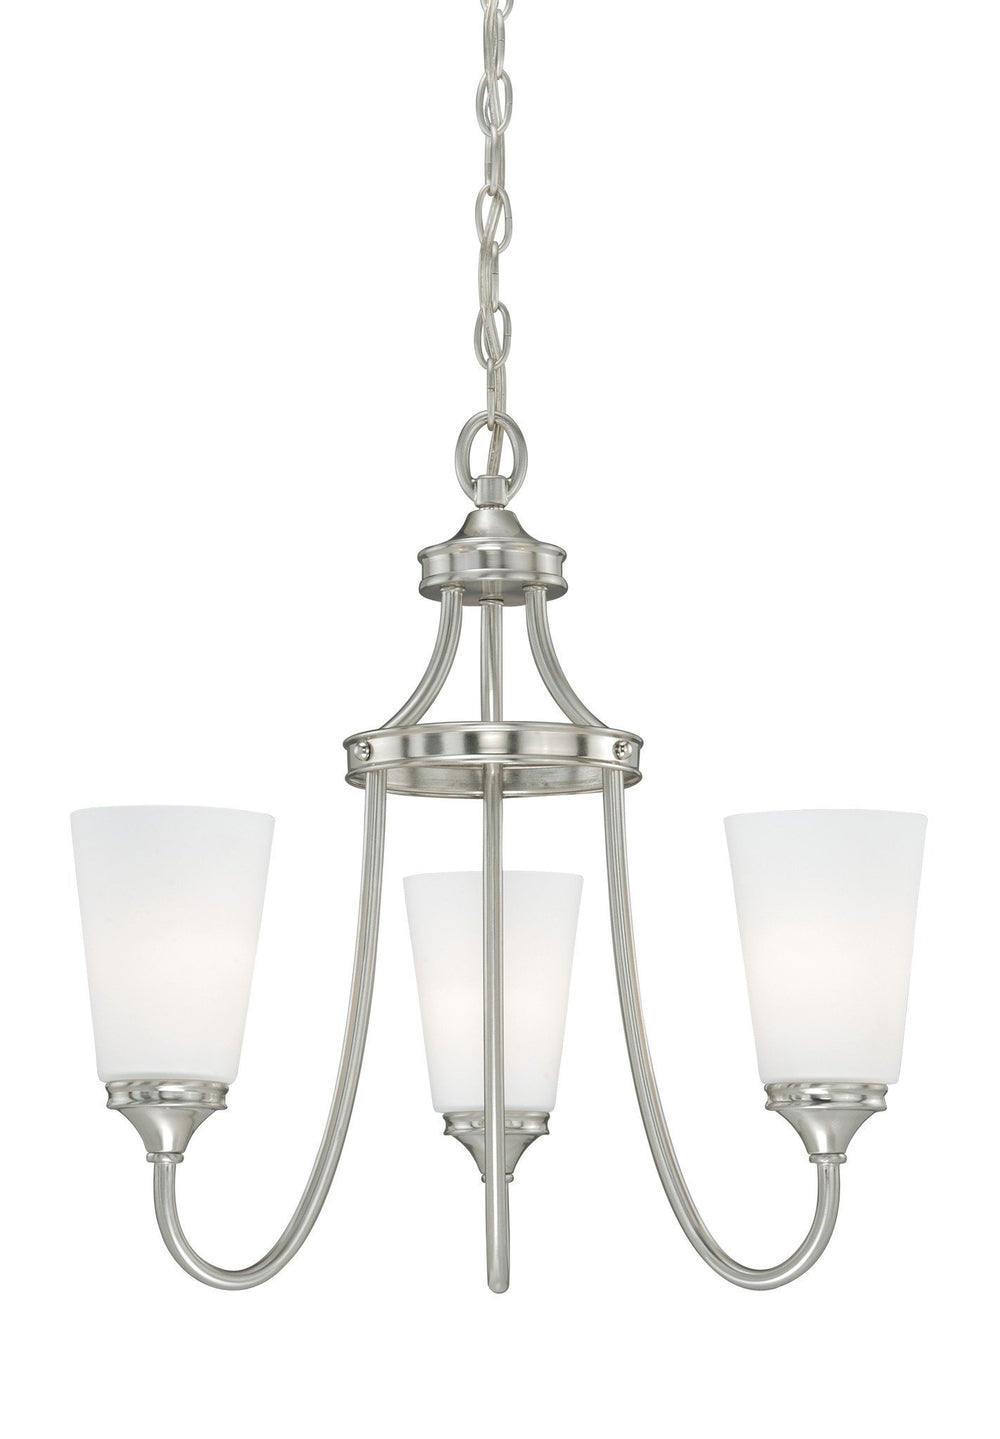 Vaxcel Lorimer 3 Light Mini Chandelier Model: H0052